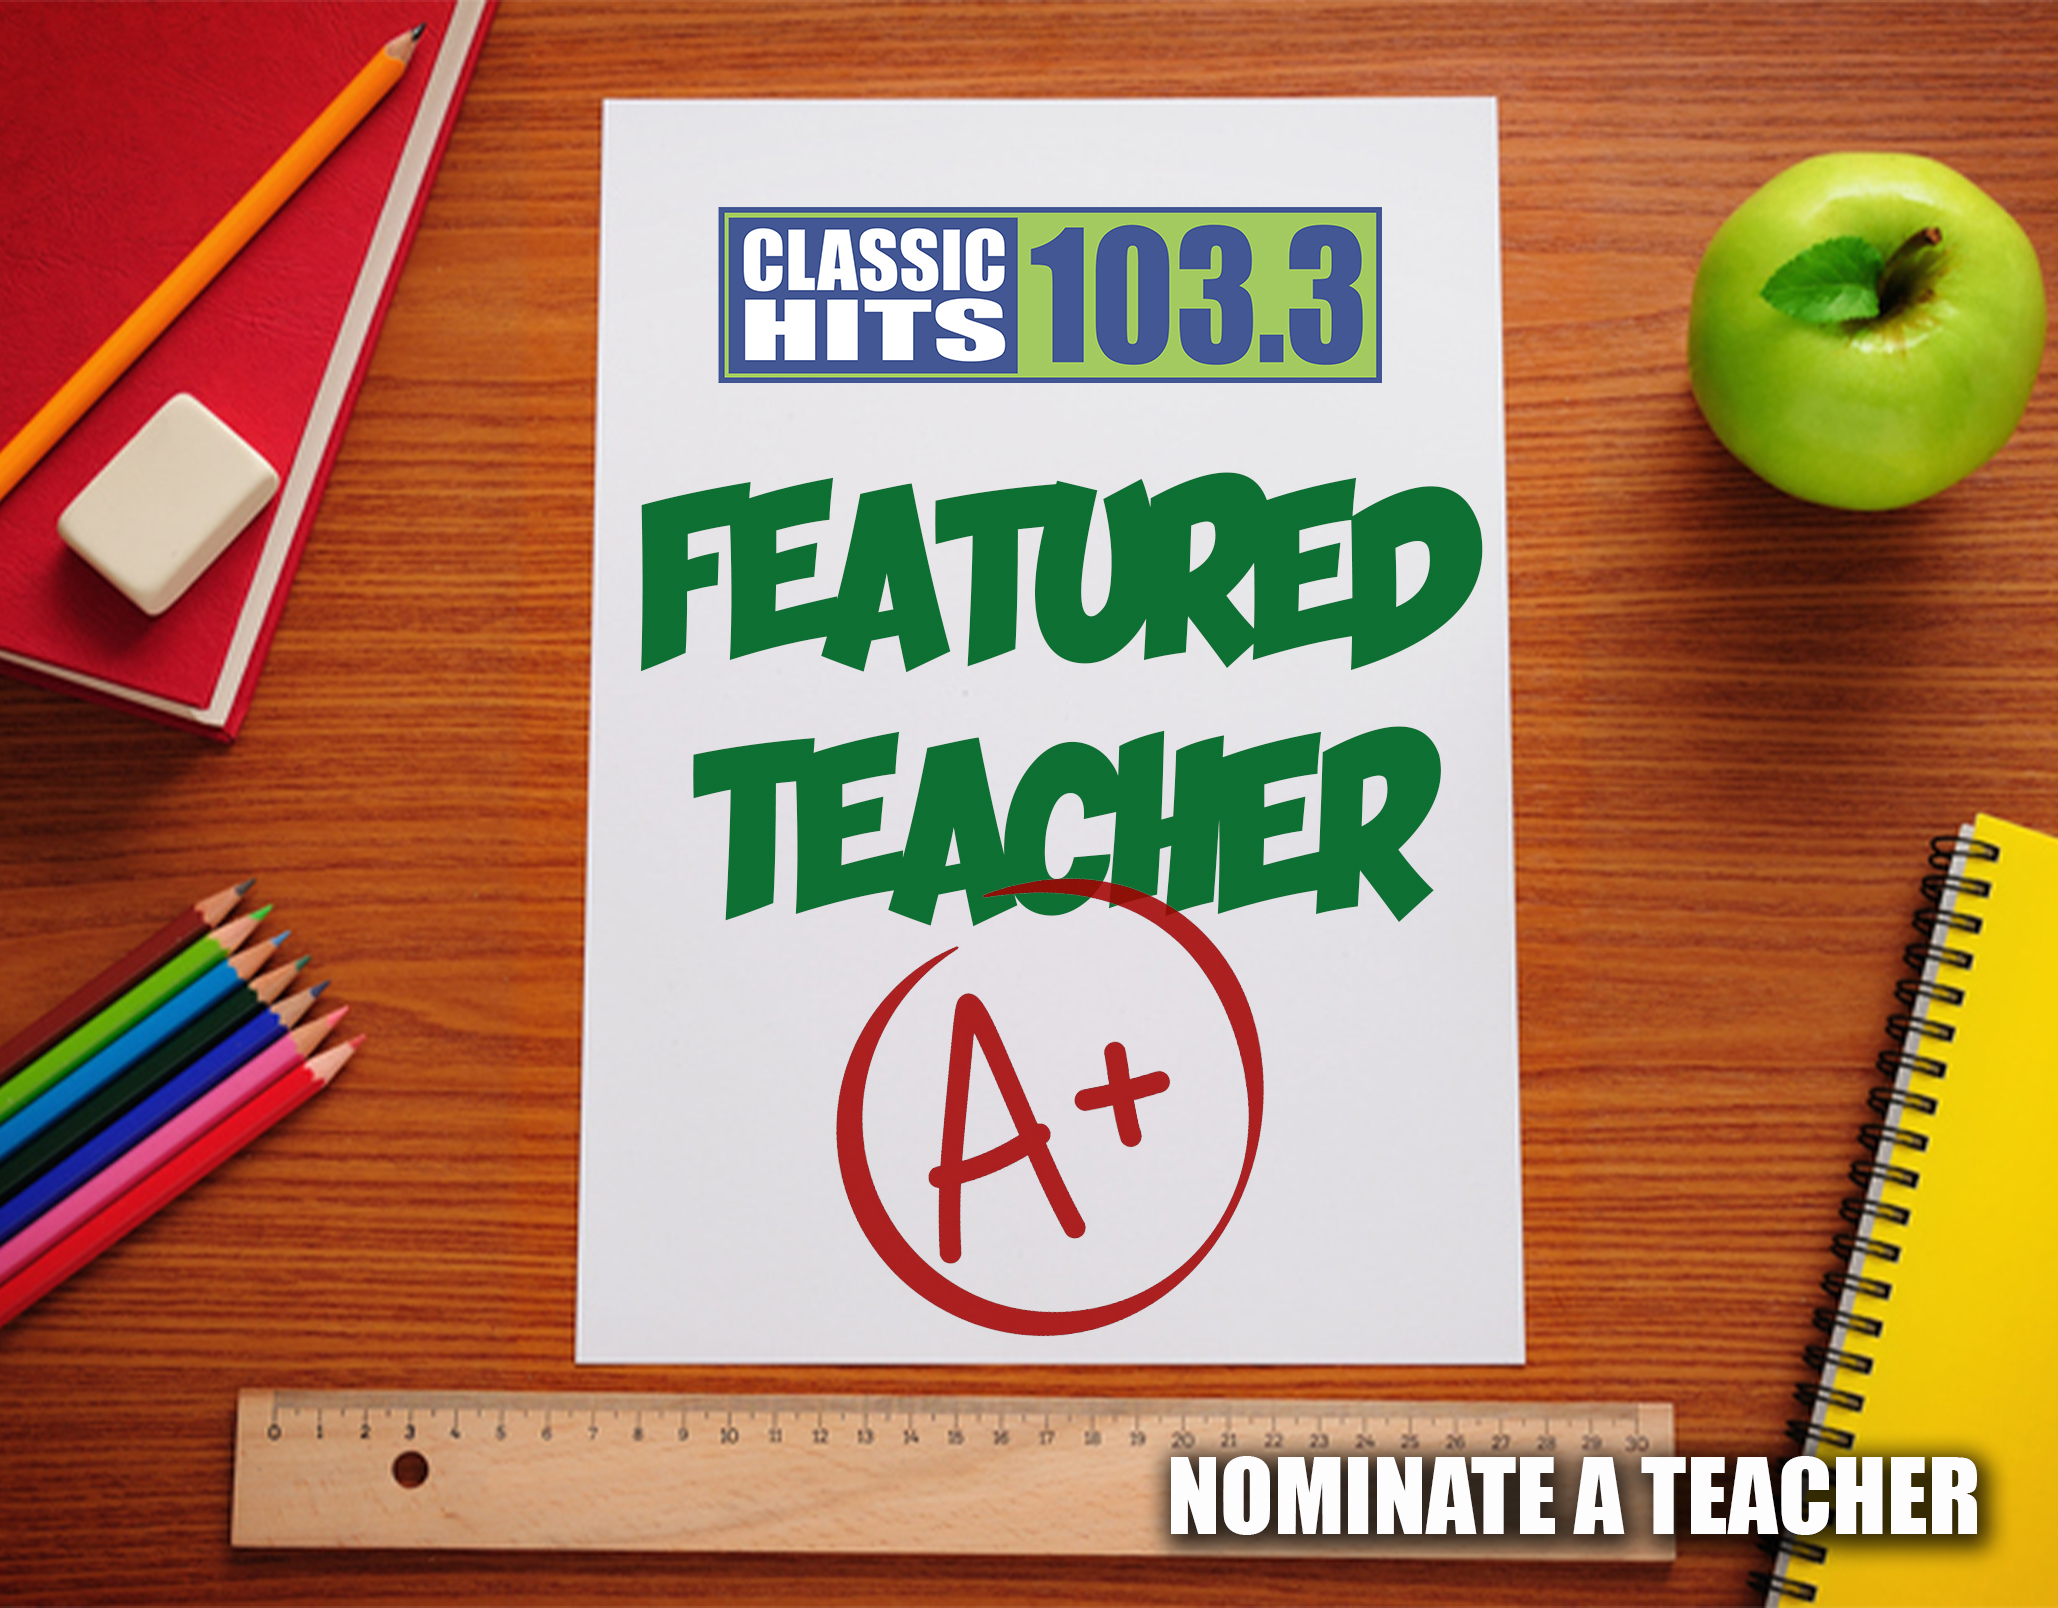 Classic Hits 103.3 Featured Teacher!